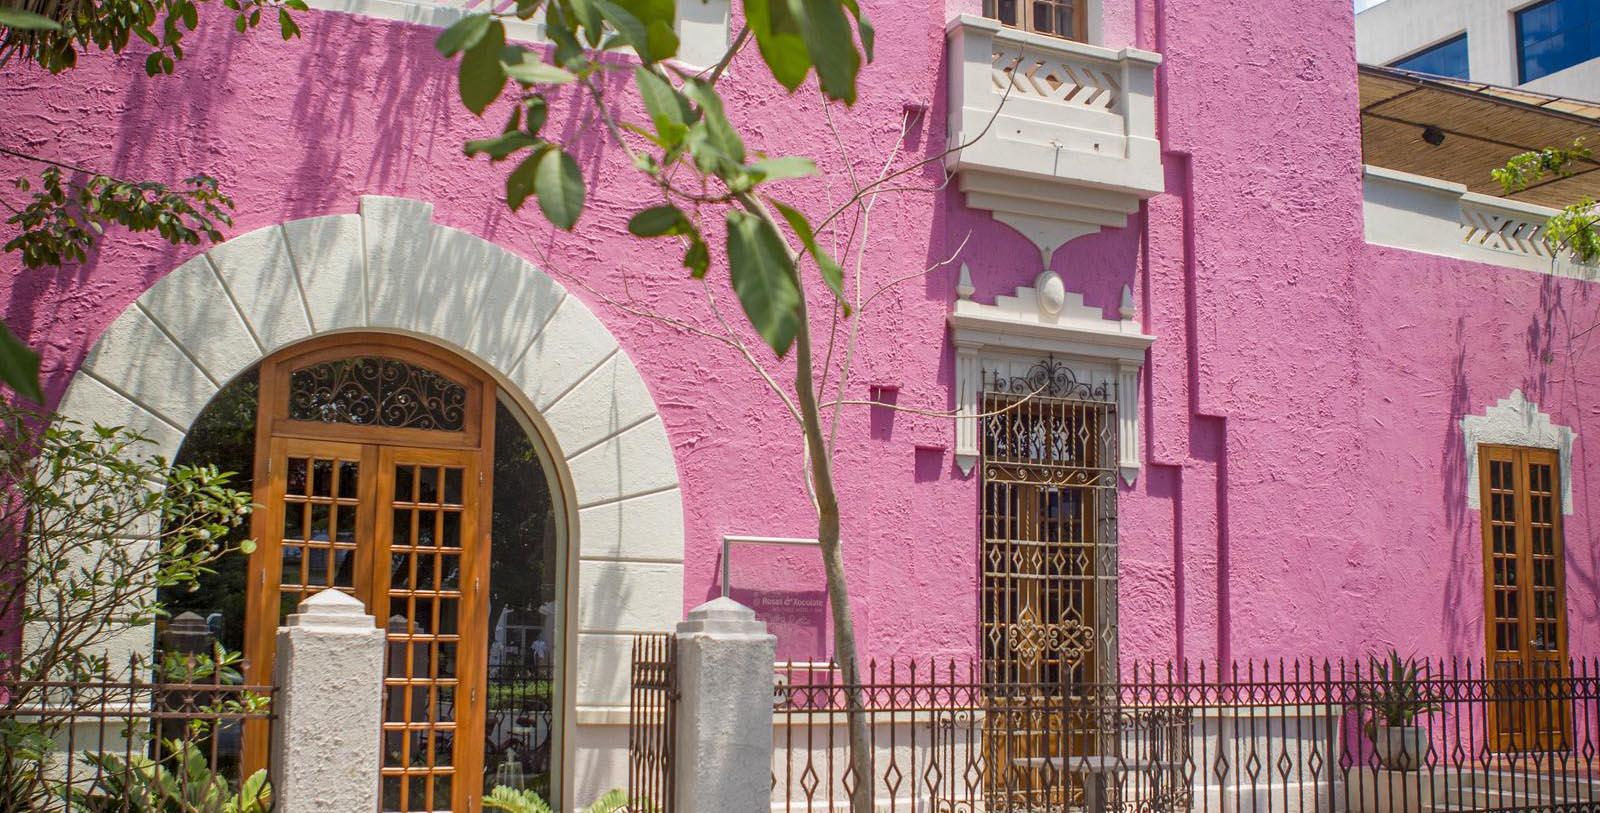 Discover the Spanish Colonial Revival architecture of this amazing historic hotel.